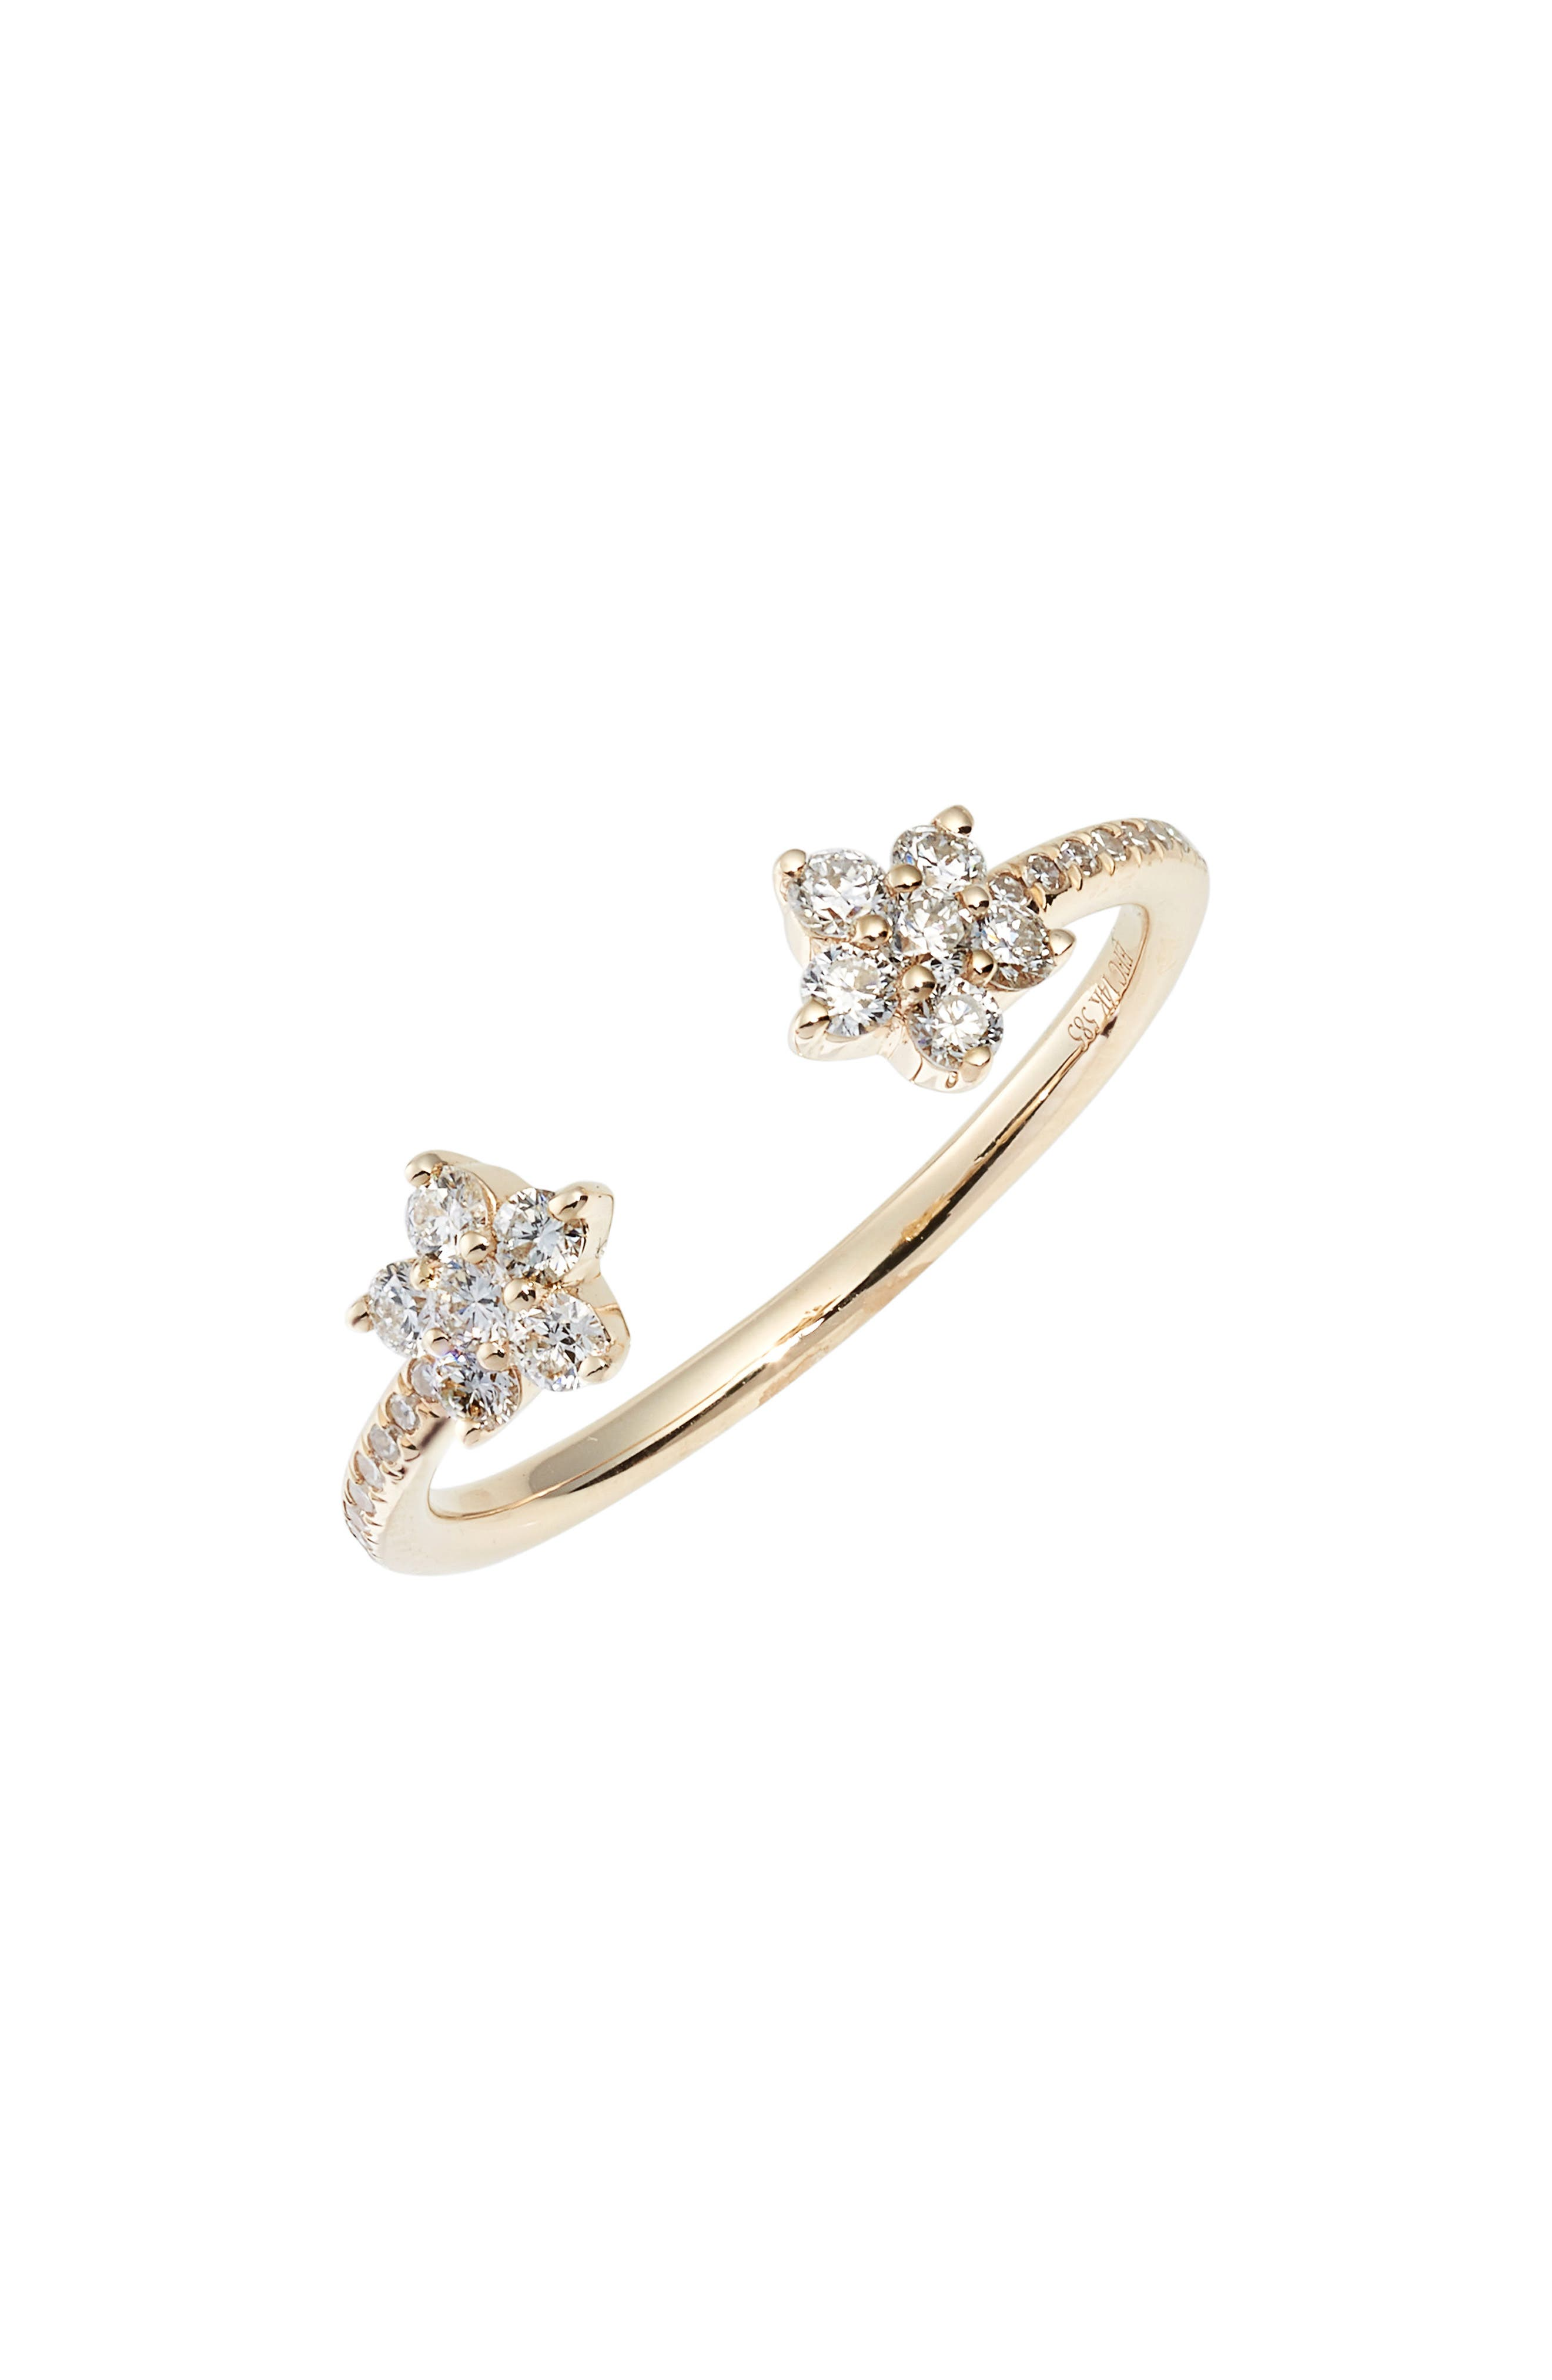 Open Diamond Flower Ring,                         Main,                         color, YELLOW GOLD